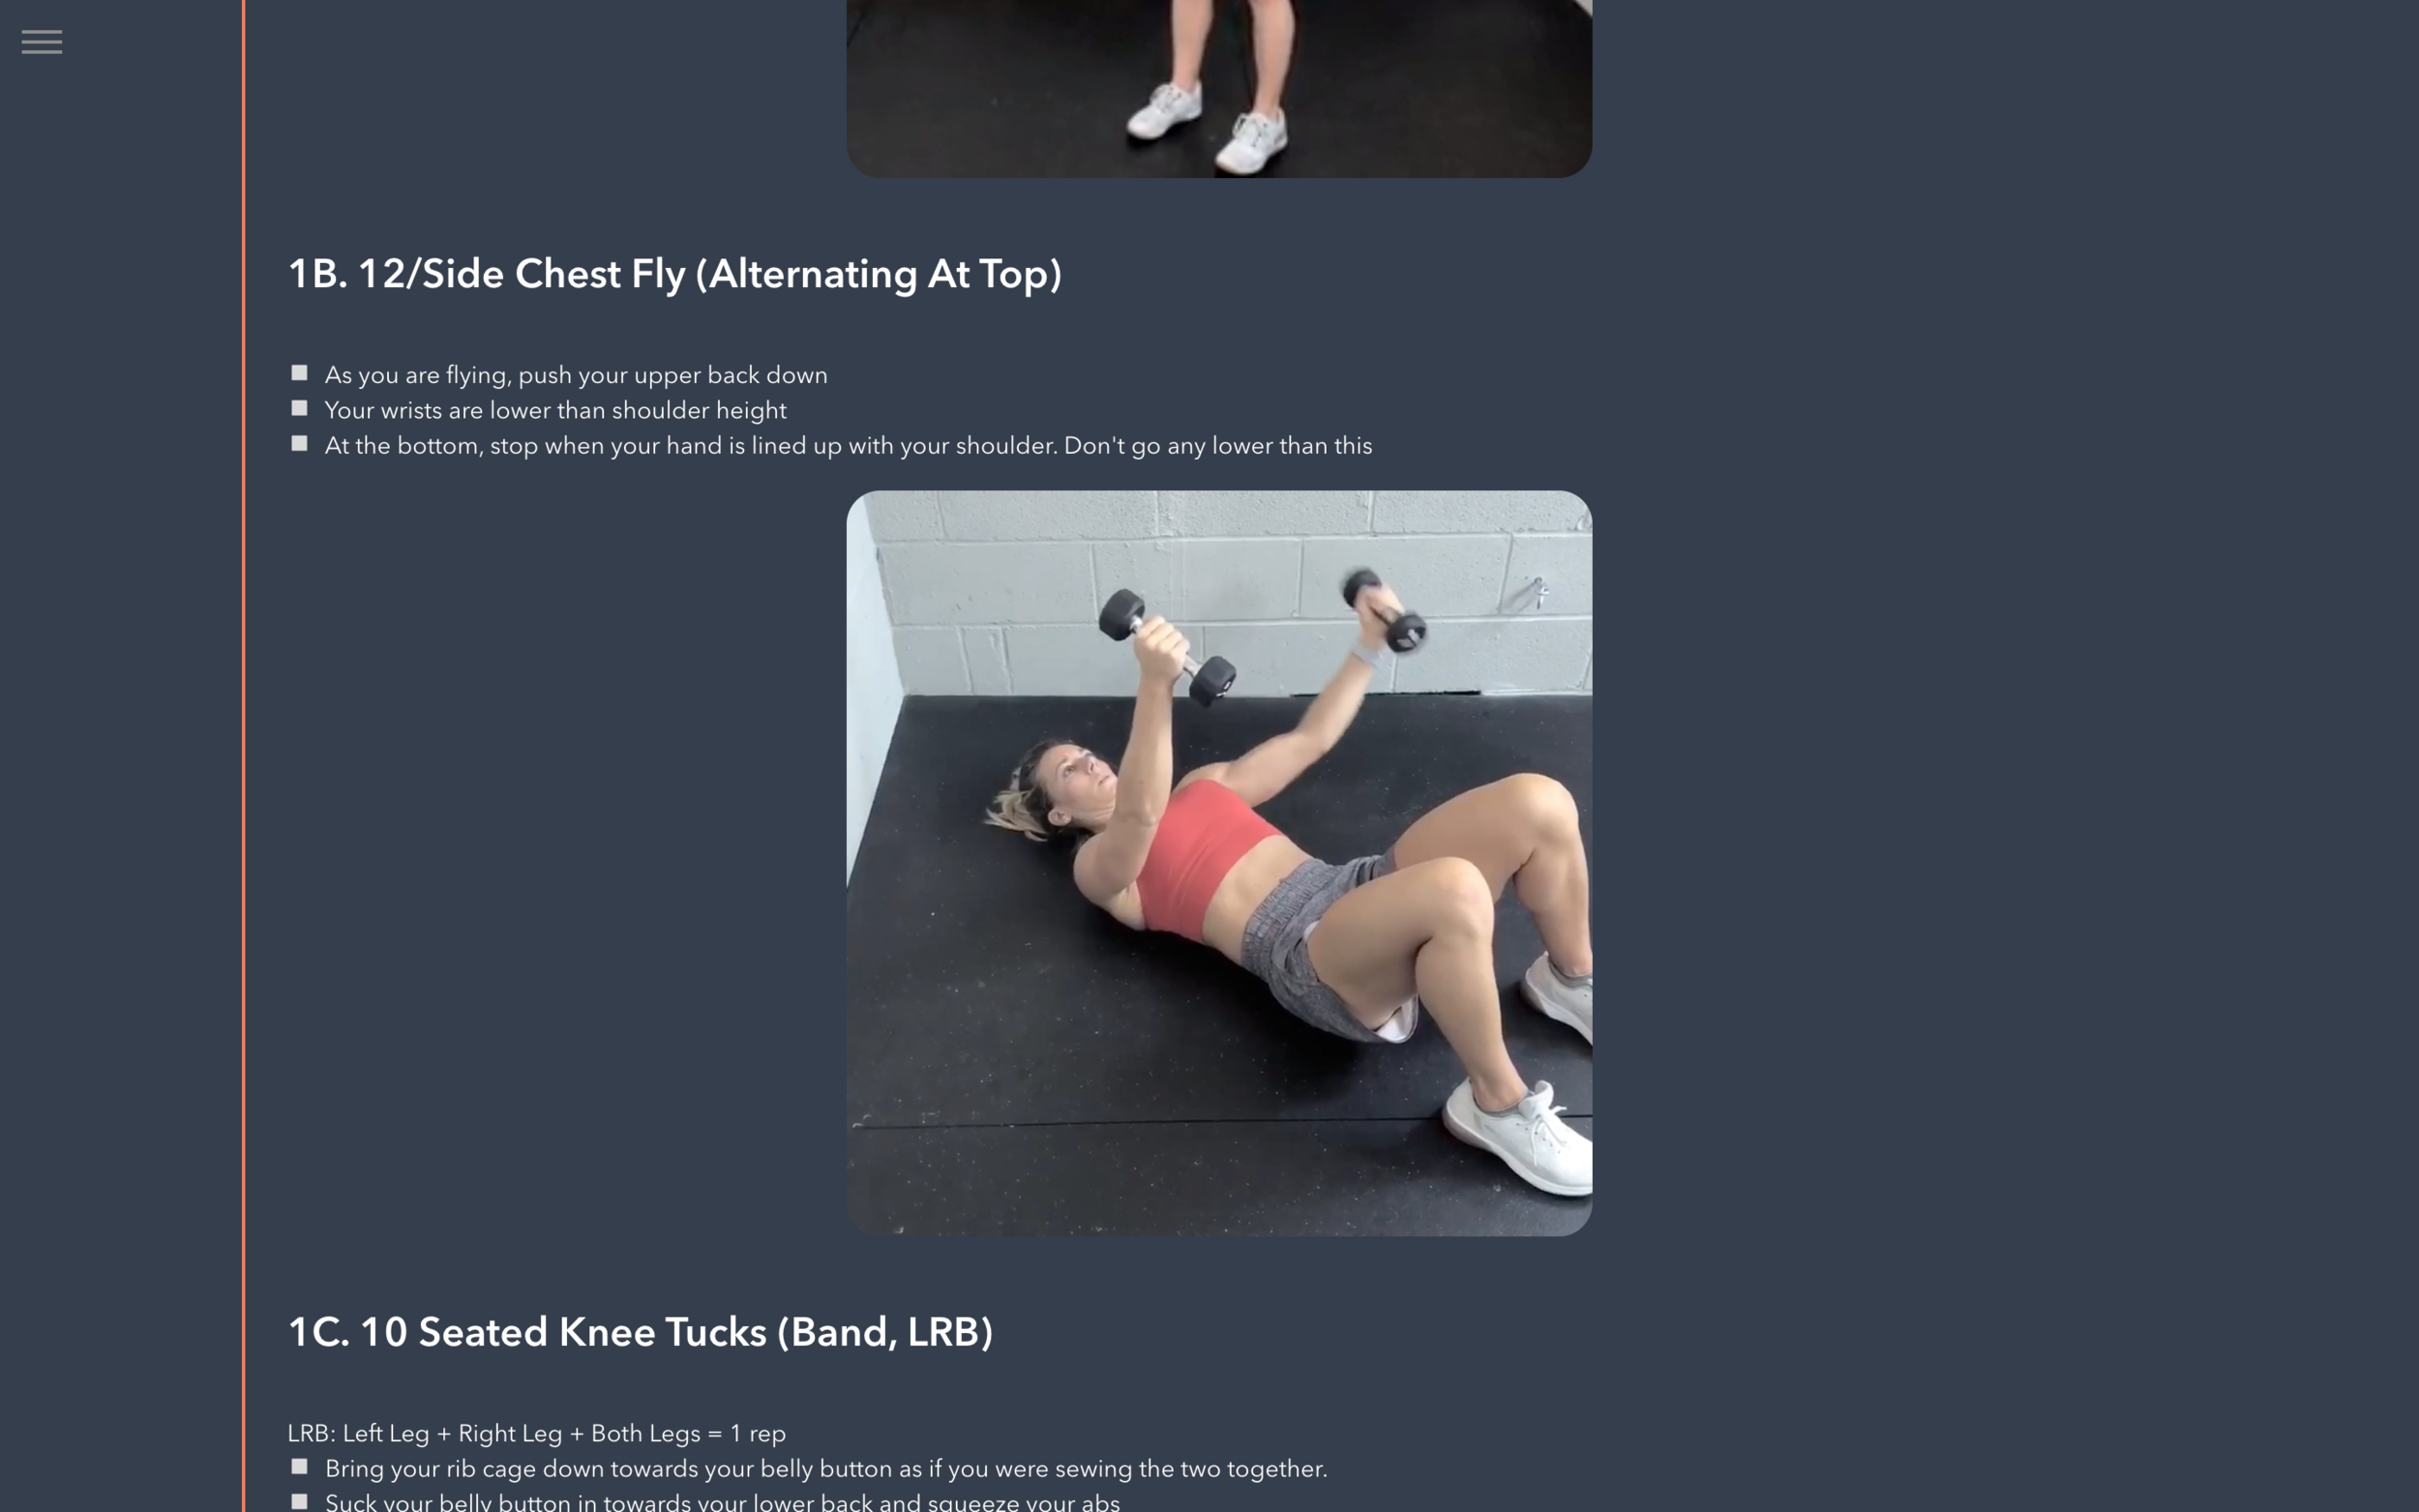 USER FRONTEND - Lastly, the user content. A section full of fitness videos organised by type of workout and date.